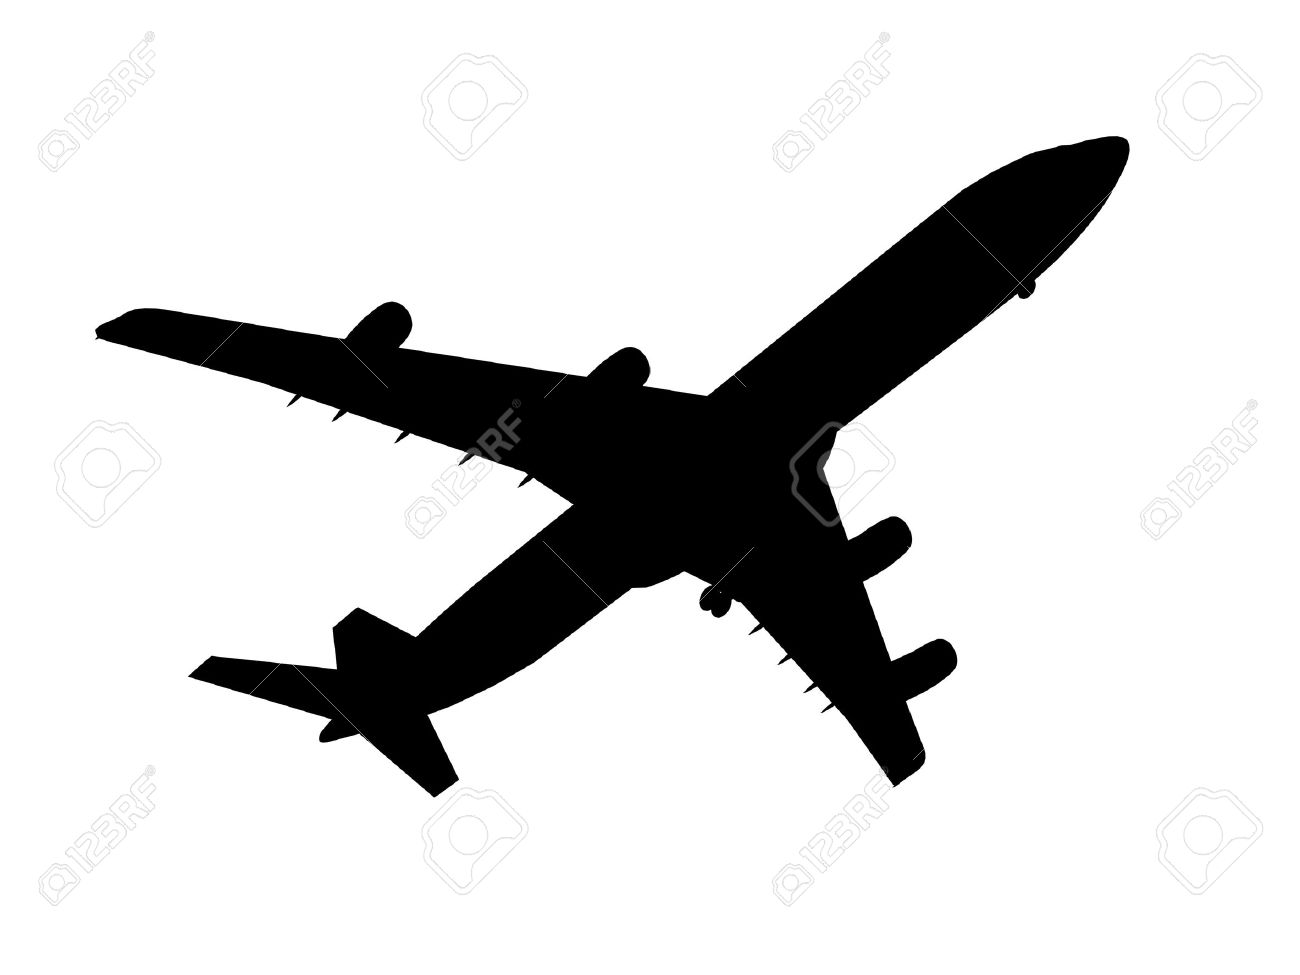 airplane shadow stock photos royalty free airplane shadow images